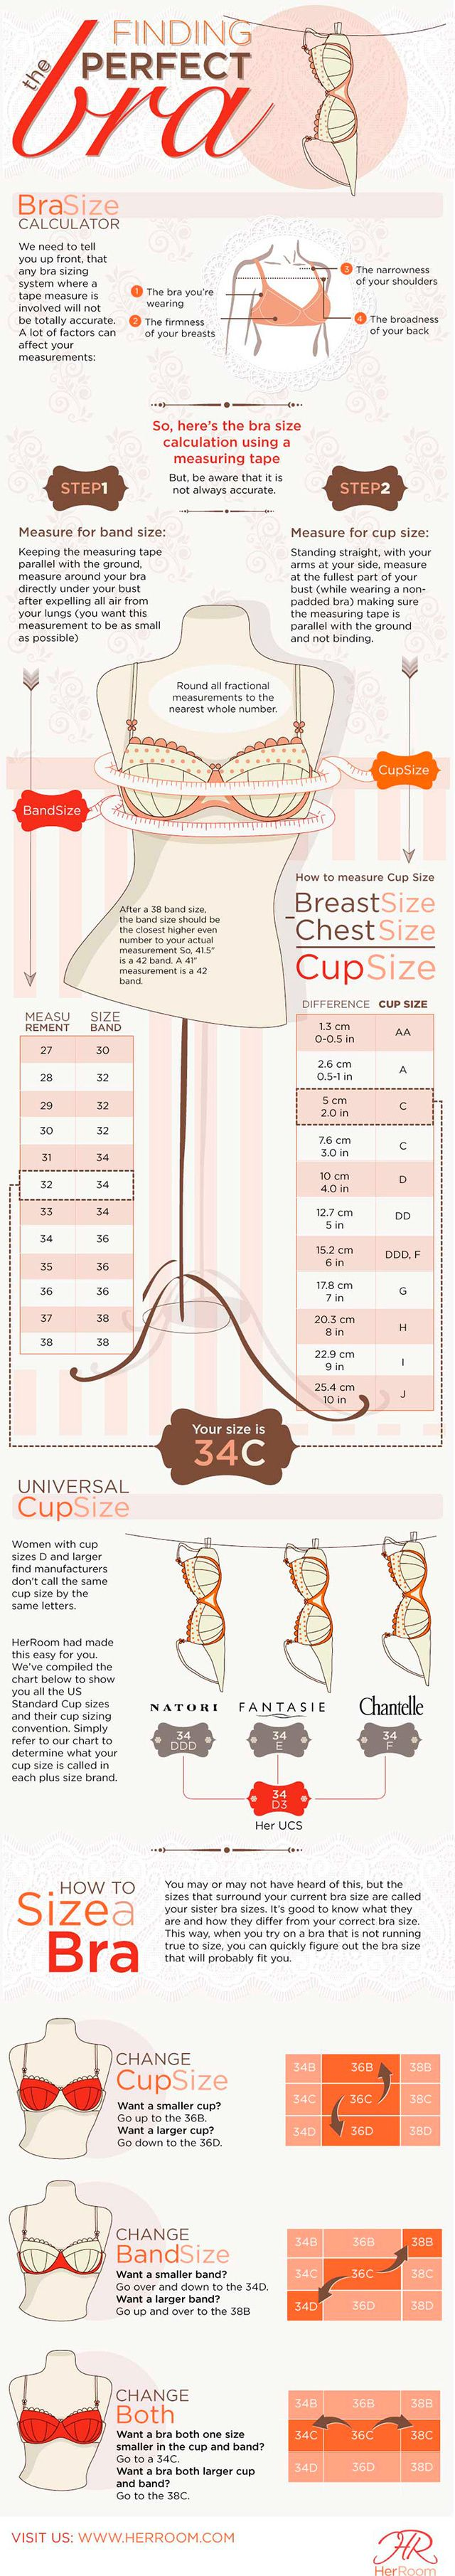 14 best images about BRA SIZE CHART on Pinterest